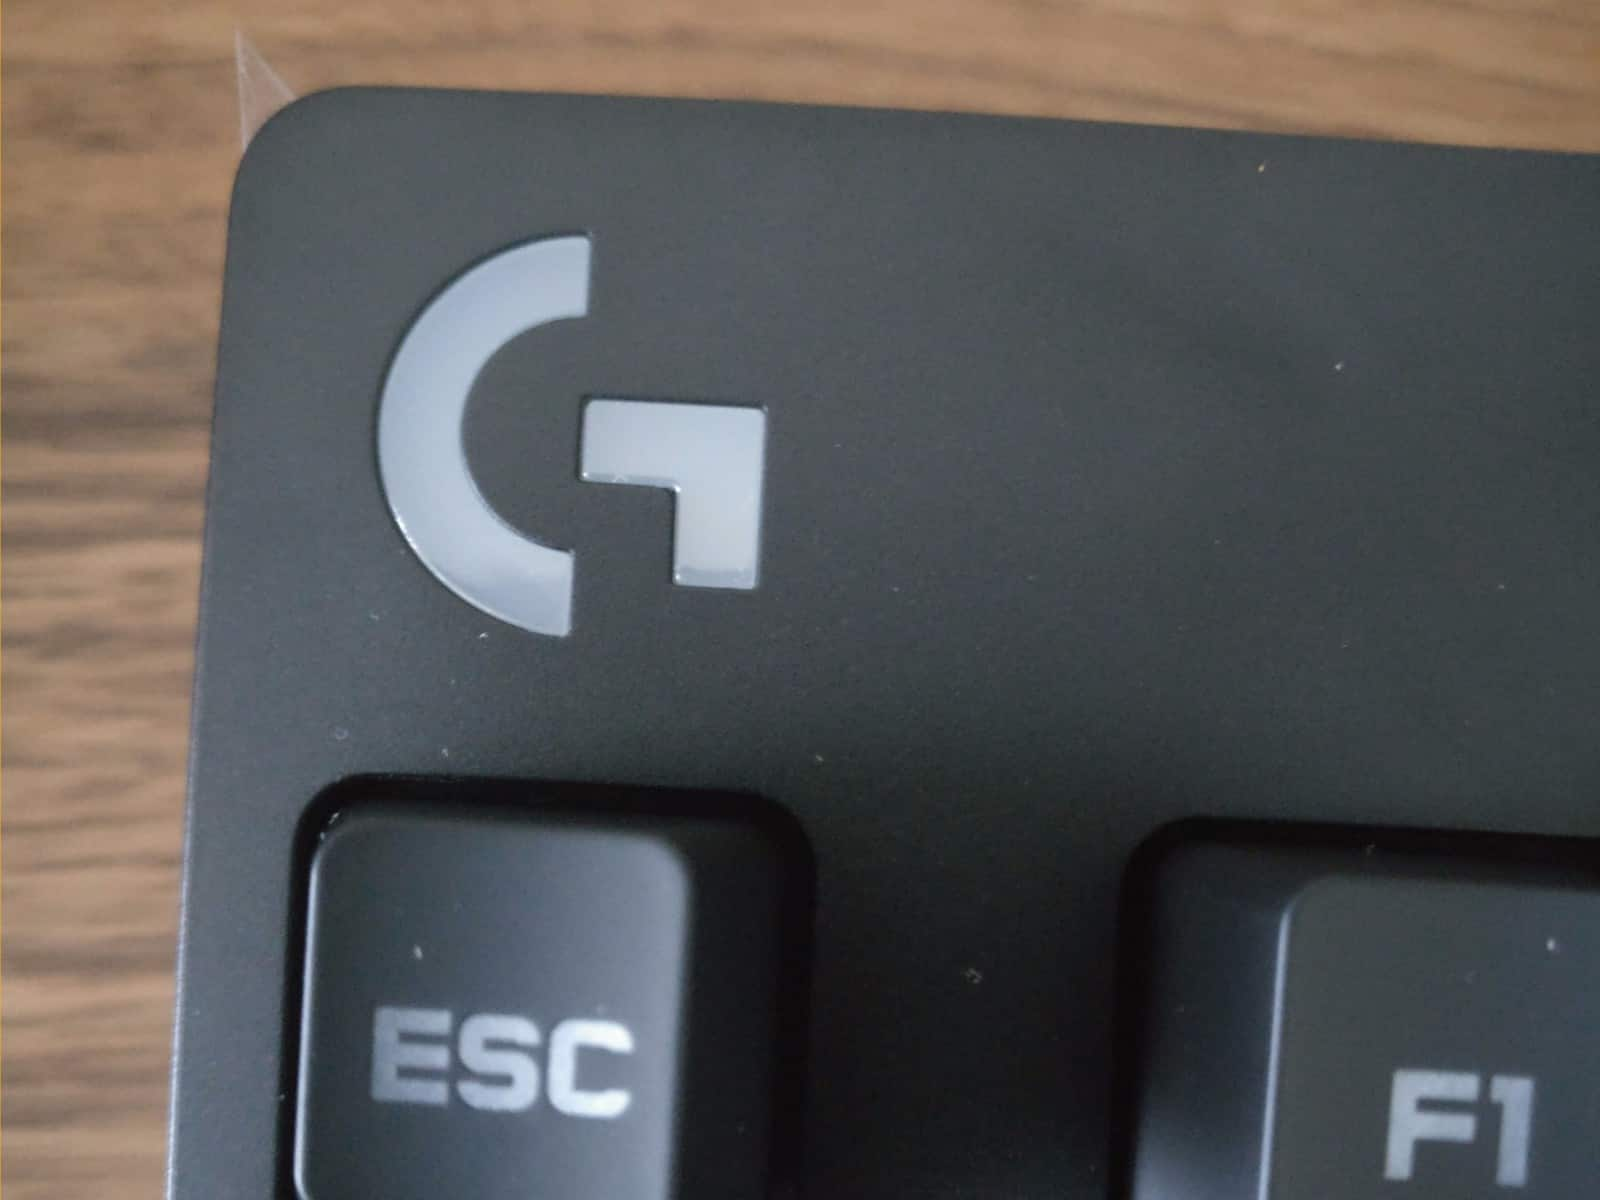 Logitech-Pro-Keyboard-Photos12 Logitech G Pro Mechanical Gaming Keyboard Review